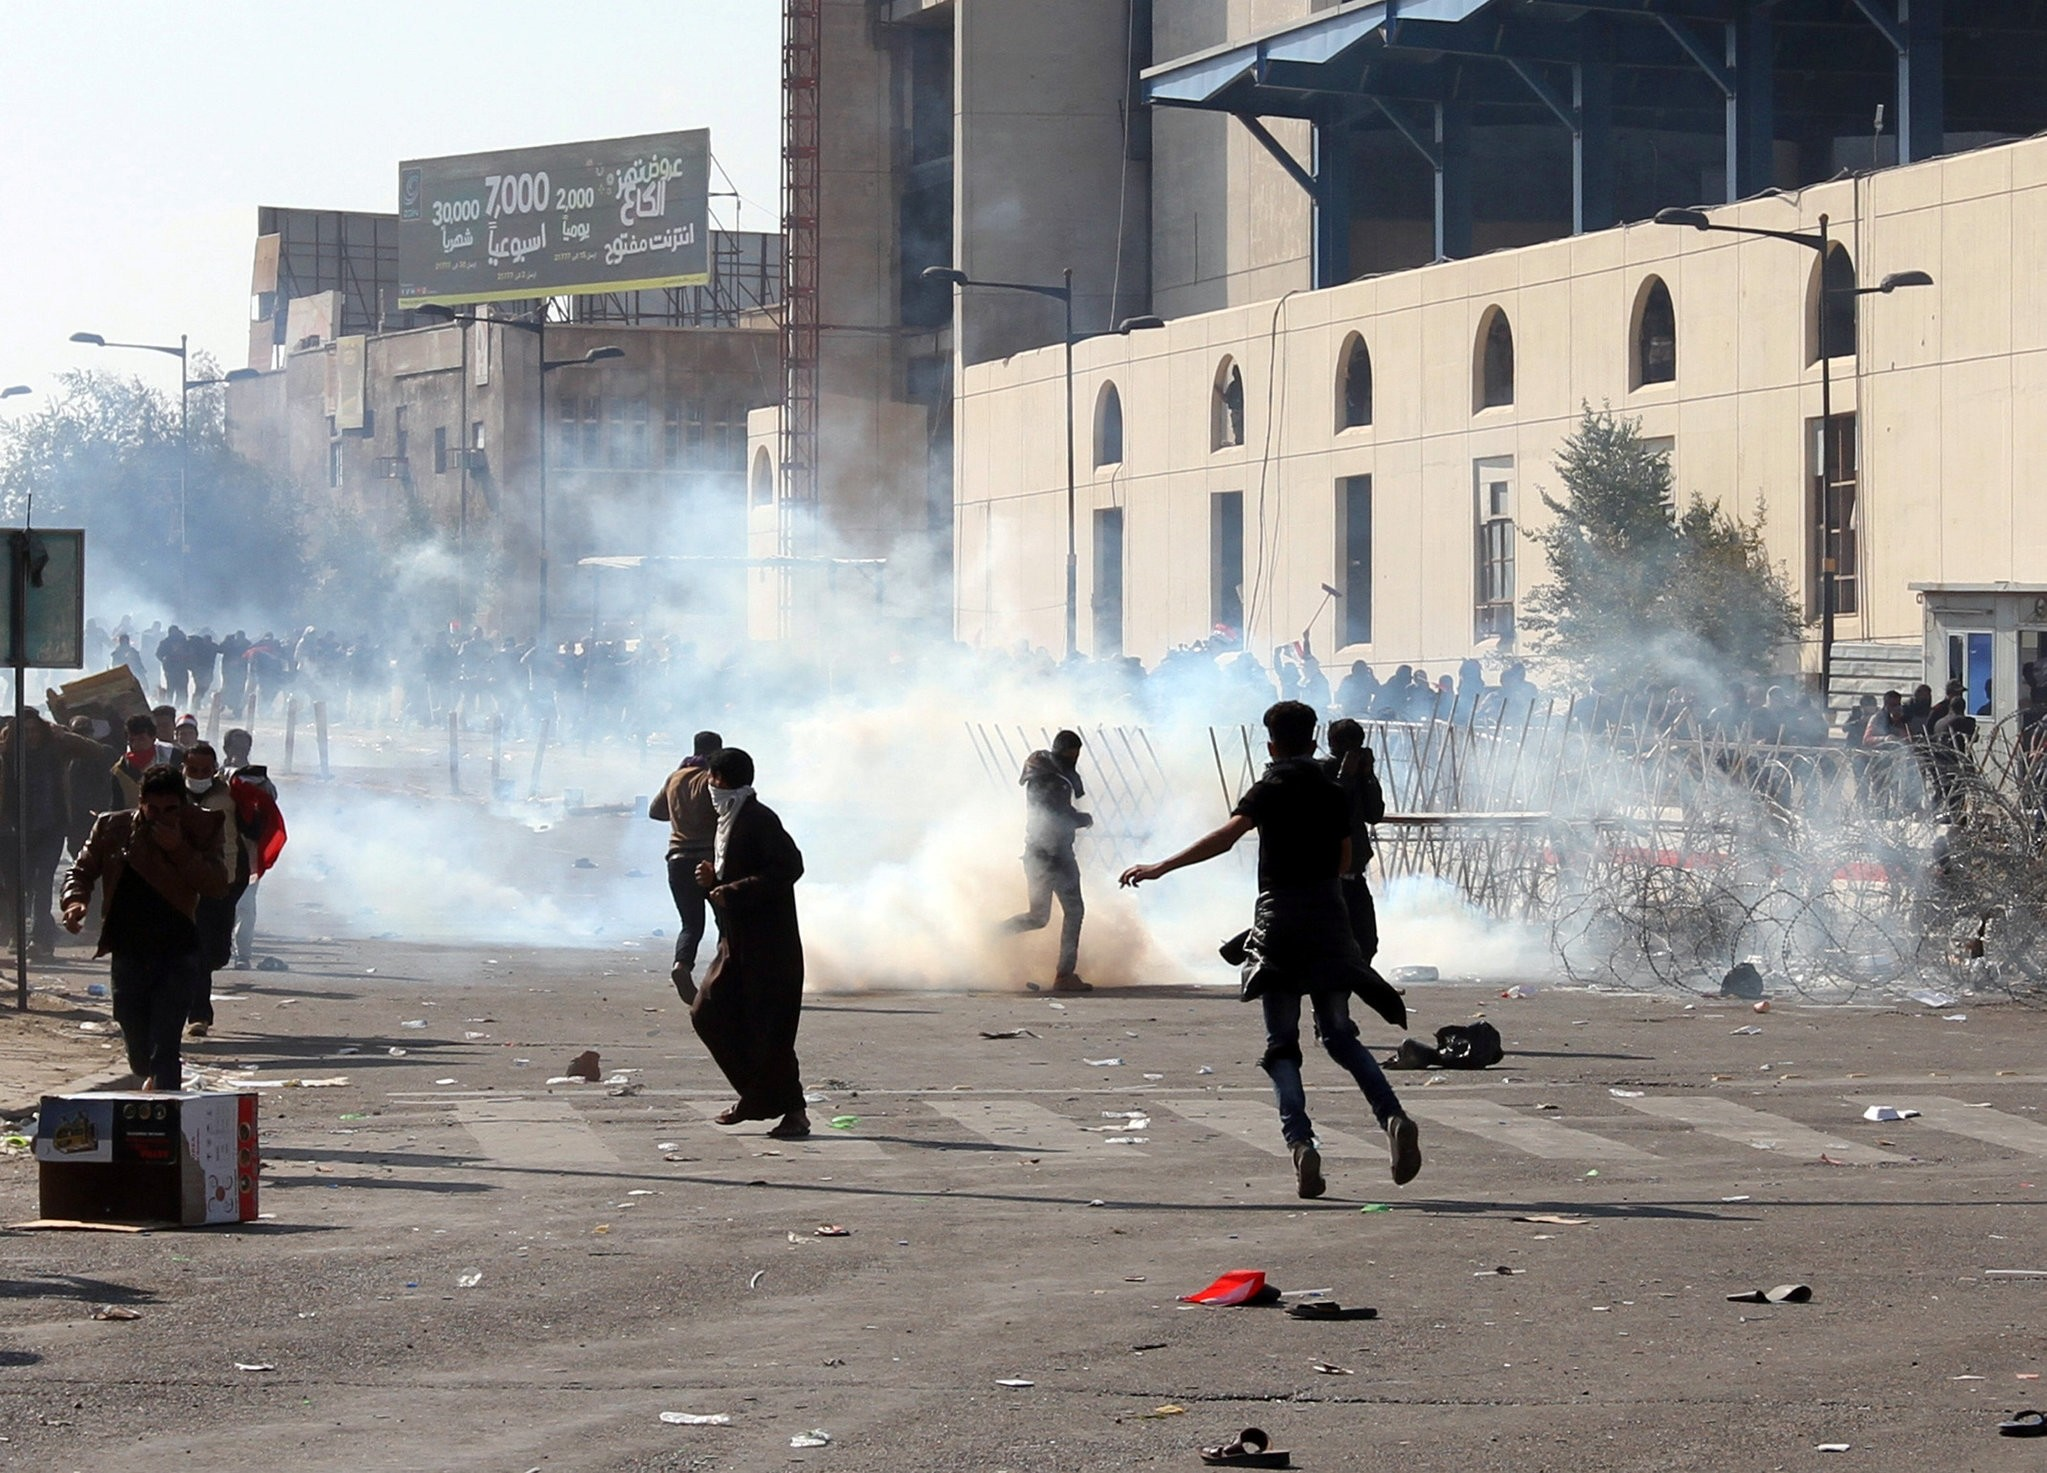 Protesters run from tear gas fired after supporters of Iraqi Shi'ite cleric Moqtada al-Sadr tried to approach the heavily fortified Green Zone Square in Baghdad, Iraq February 11, 2017. (REUTERS Photo)